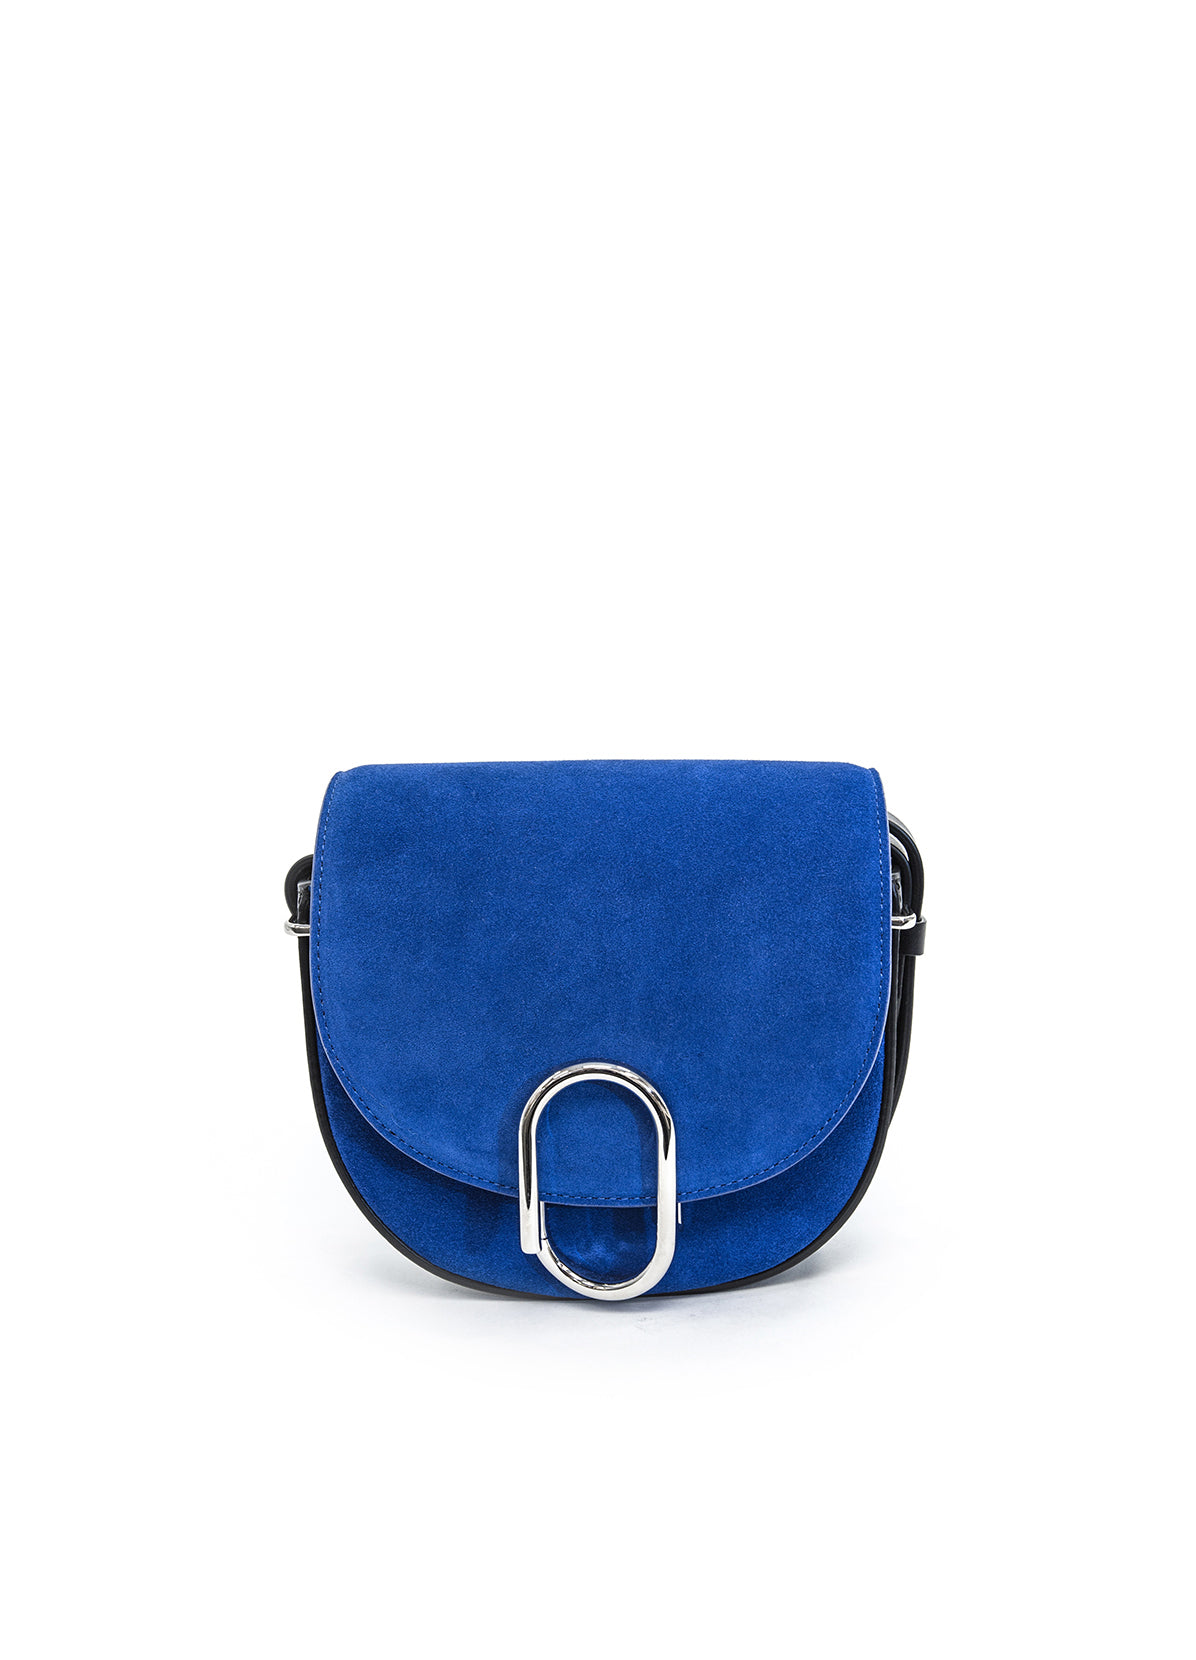 ALIX MINI SADDLE CROSSBODY